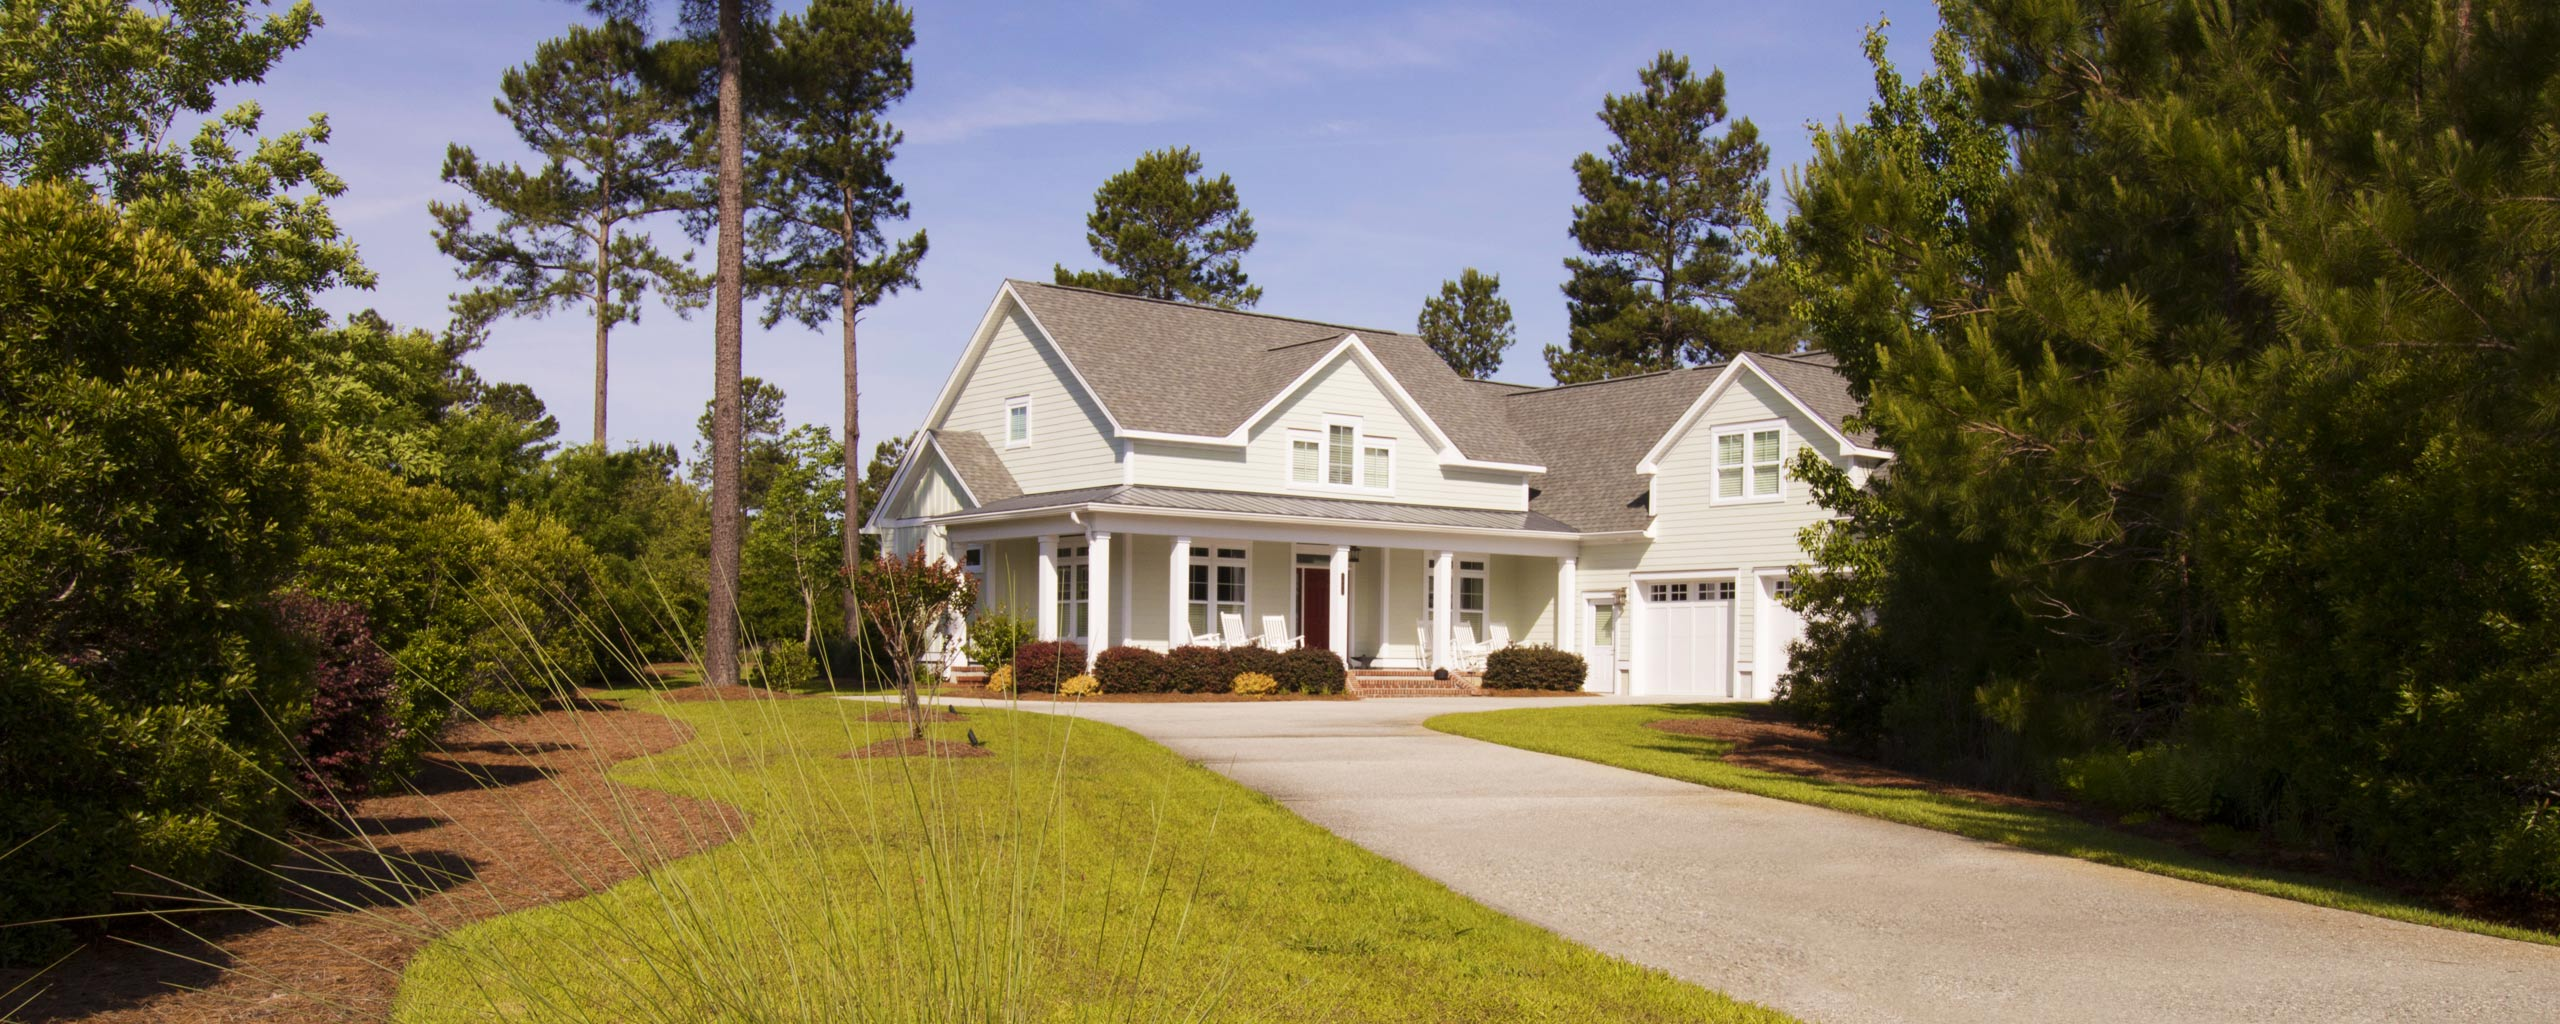 Listing with Brunswick Forest